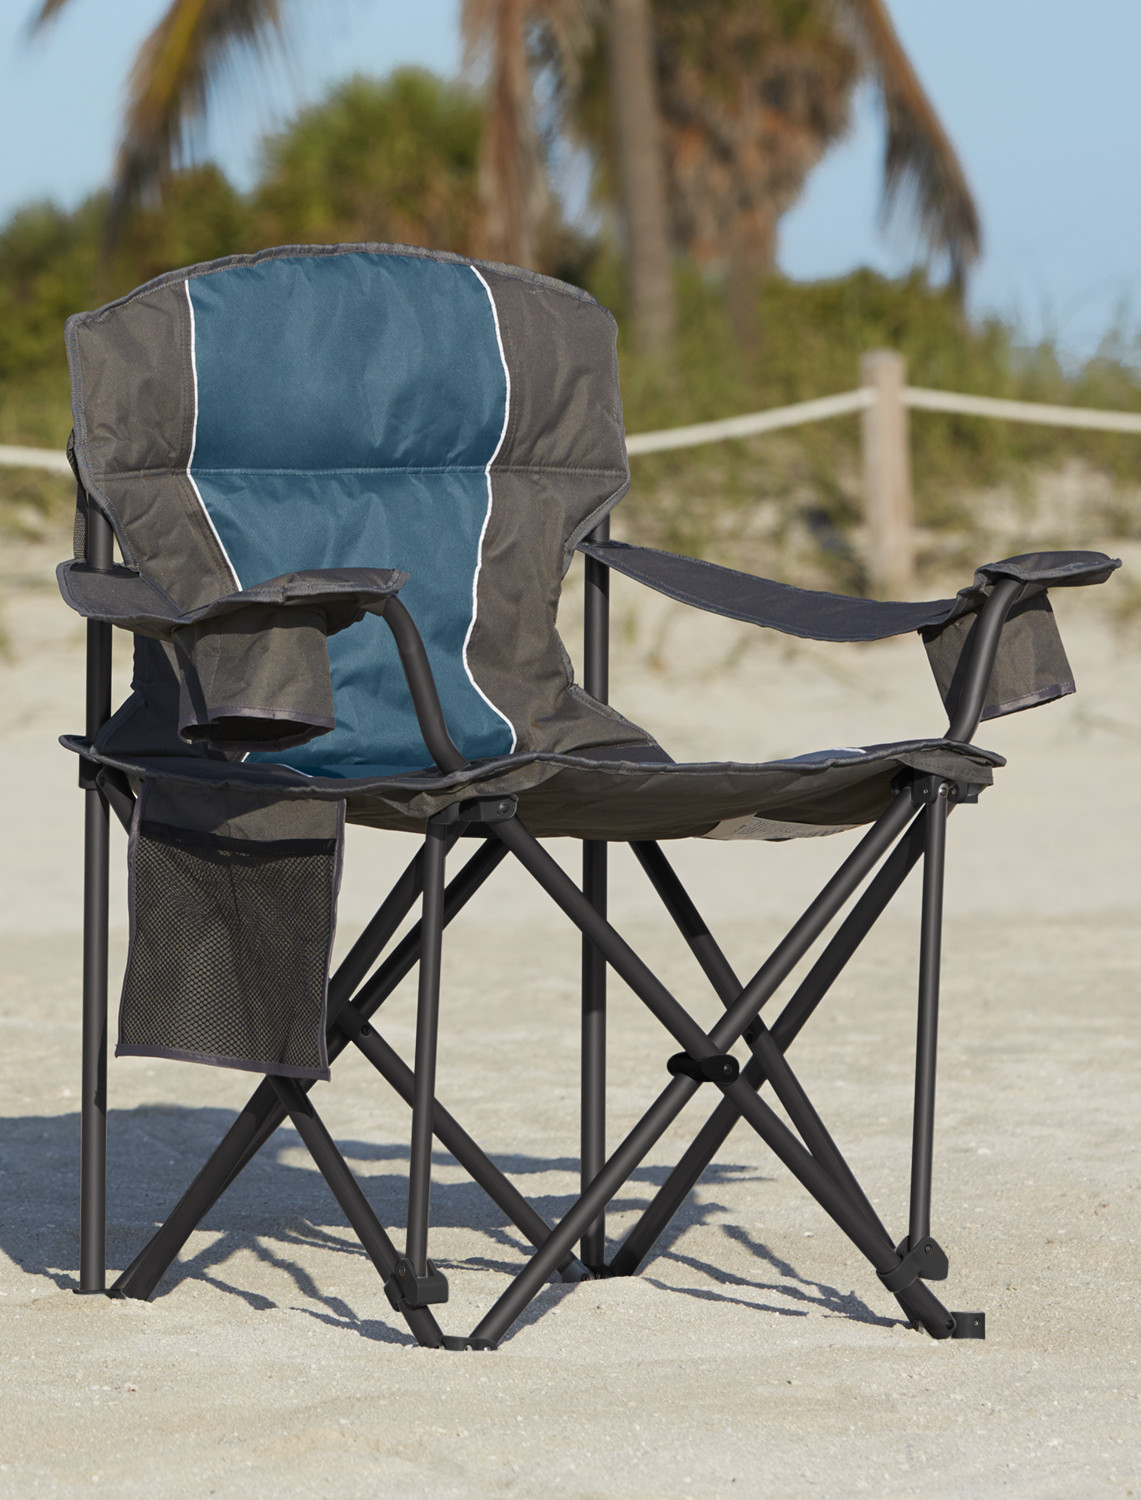 Capacity Heavy Duty Portable Chair